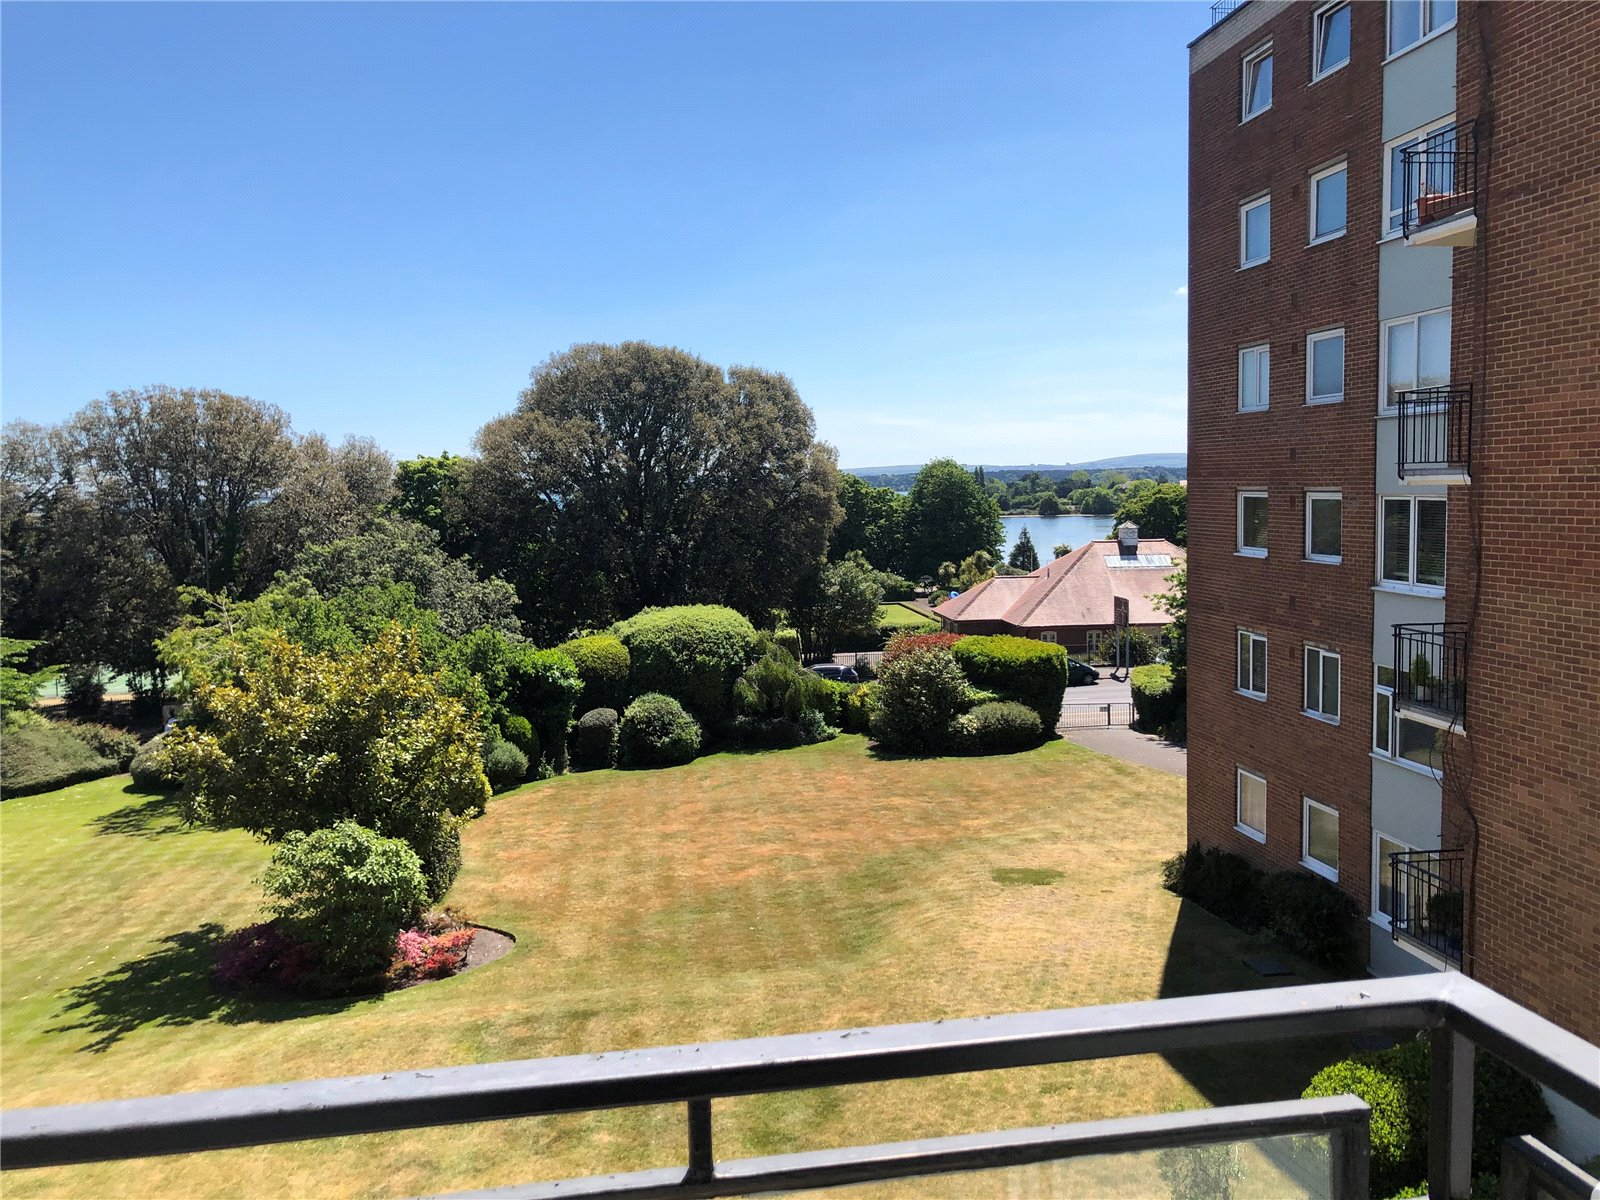 2 bed apartment for sale in Parkstone Road, Poole - Property Image 1